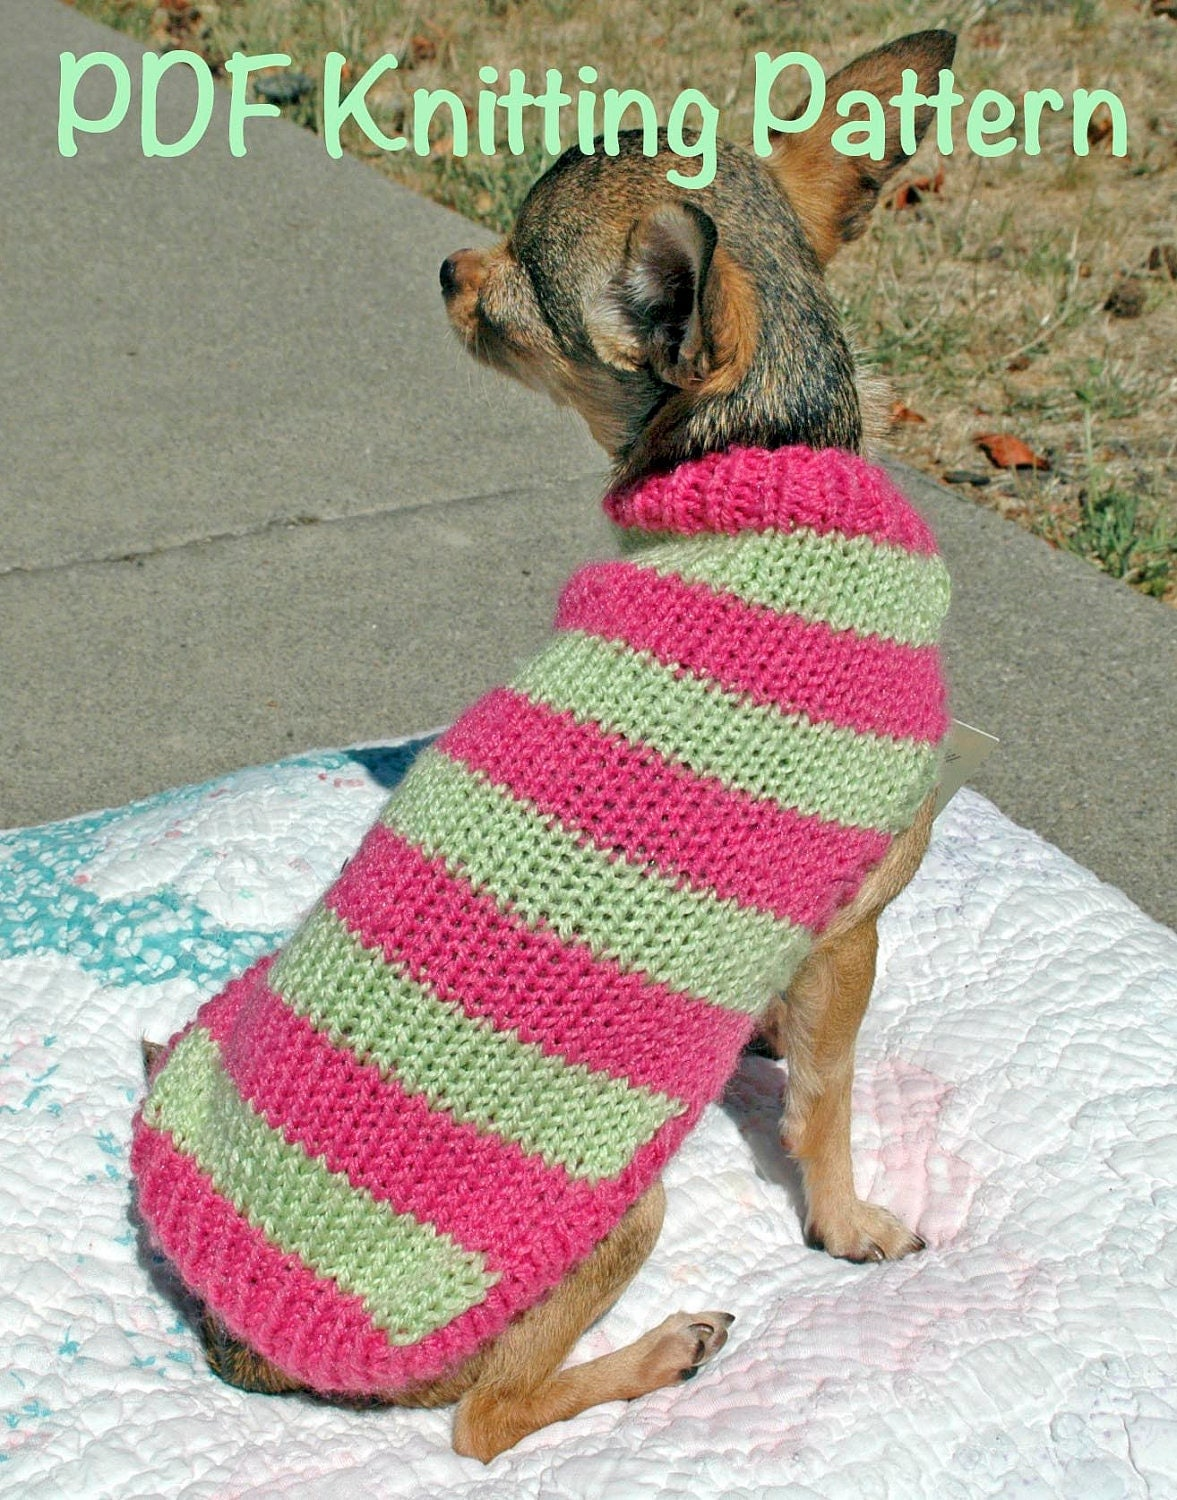 Knitted Dog Sweater Pattern Free